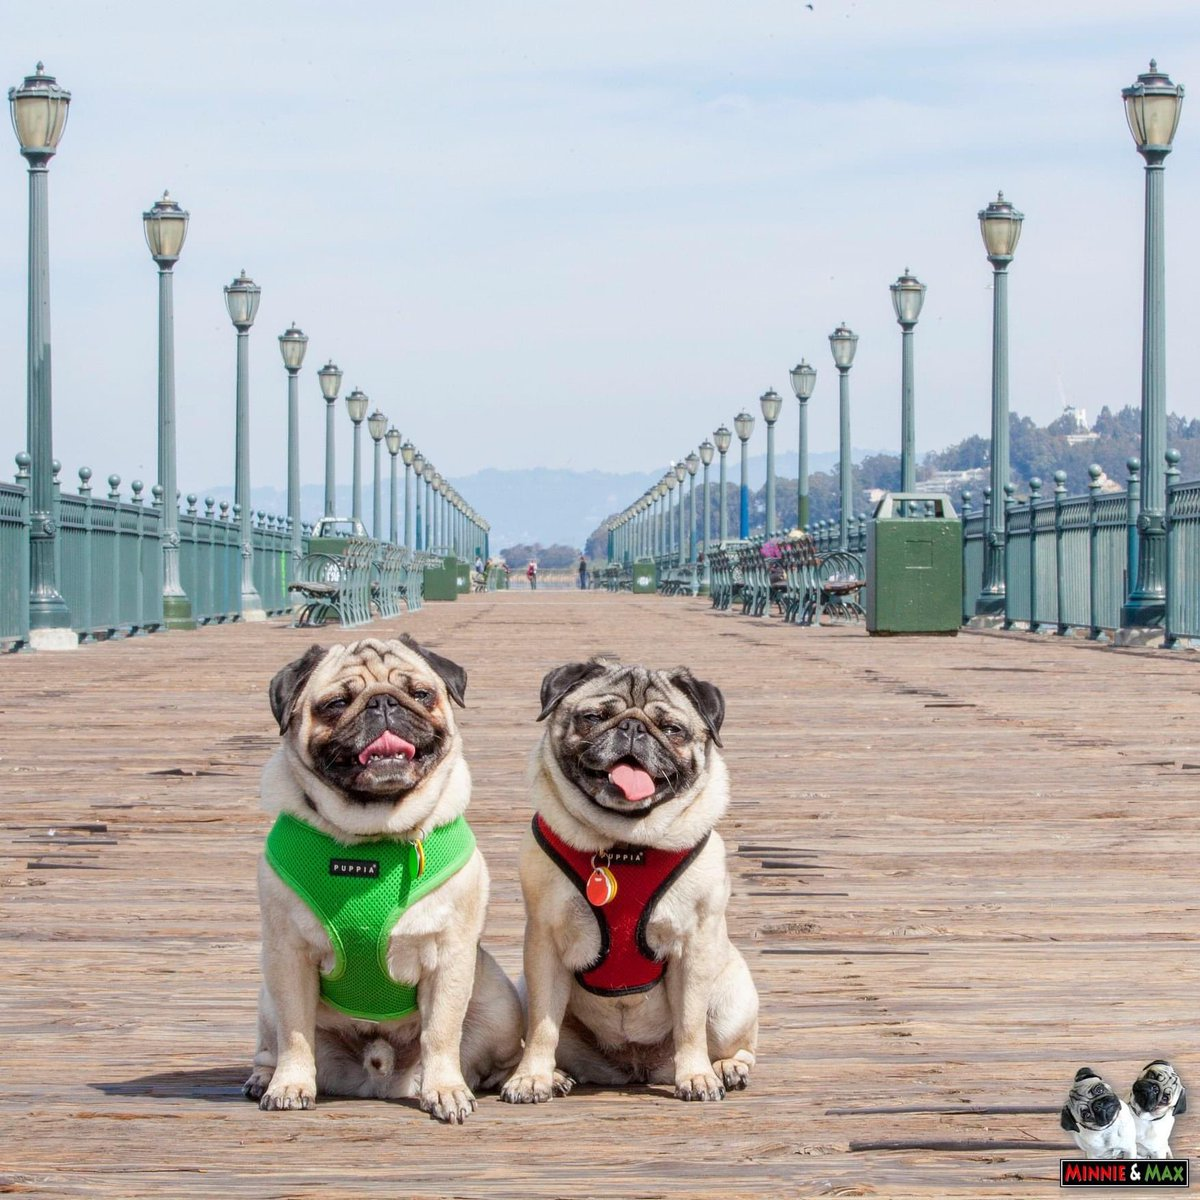 That day in 2013 when we took a short walk on a long pier.  #ThrowbackThursday #SanFrancisco #pug pic.twitter.com/G66Sza0SzJ